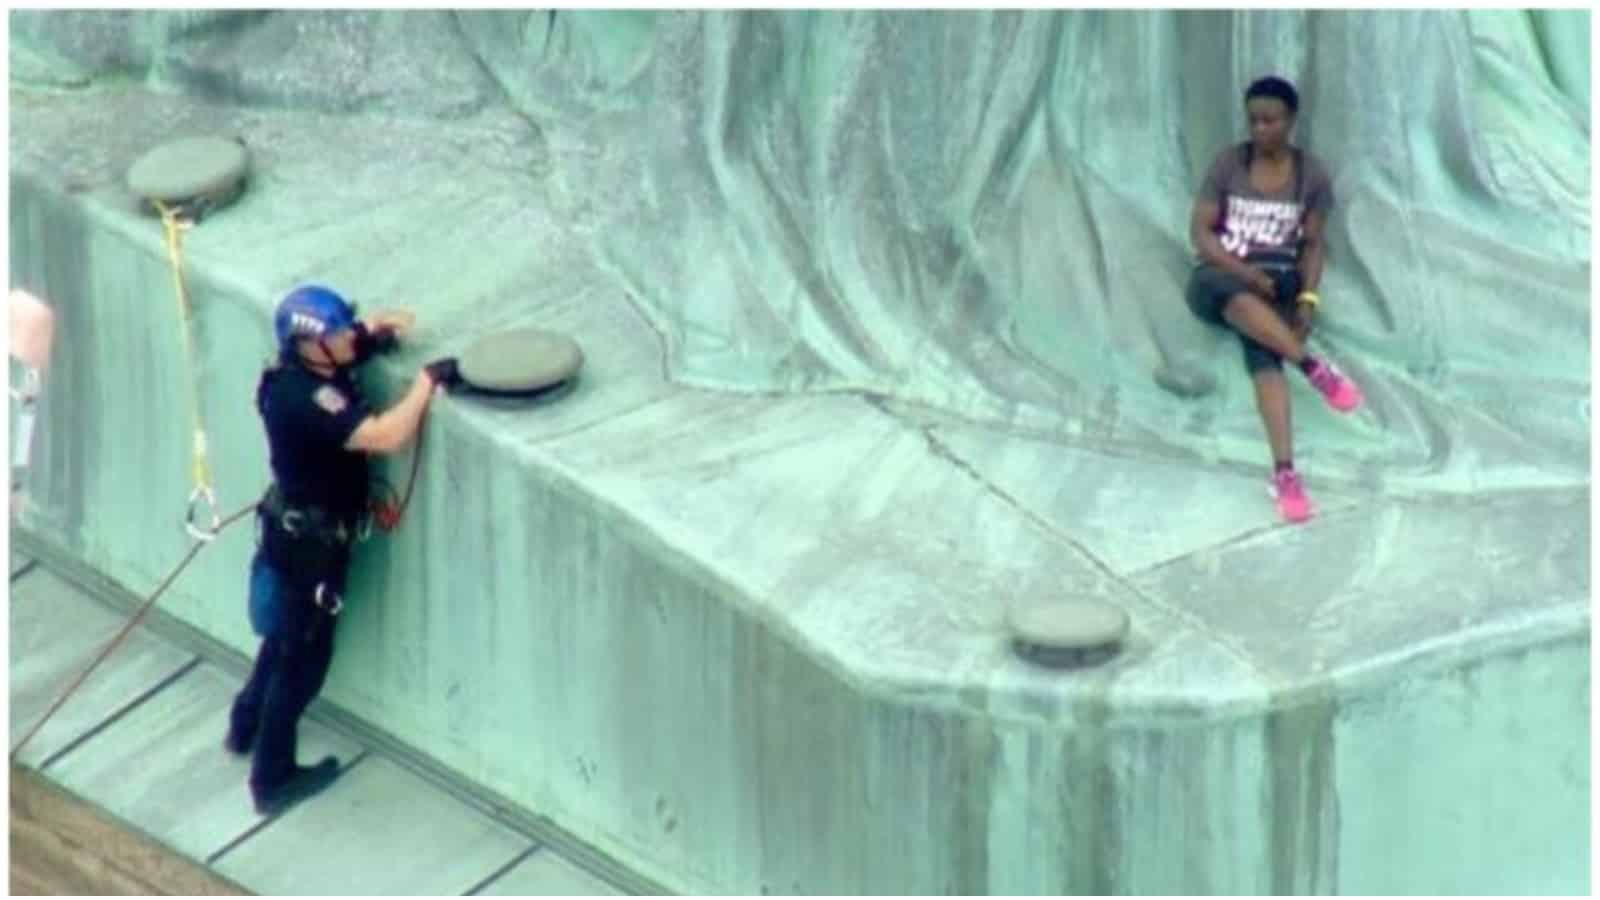 Black Activist Who Climbed Statue of Liberty Found Guilty